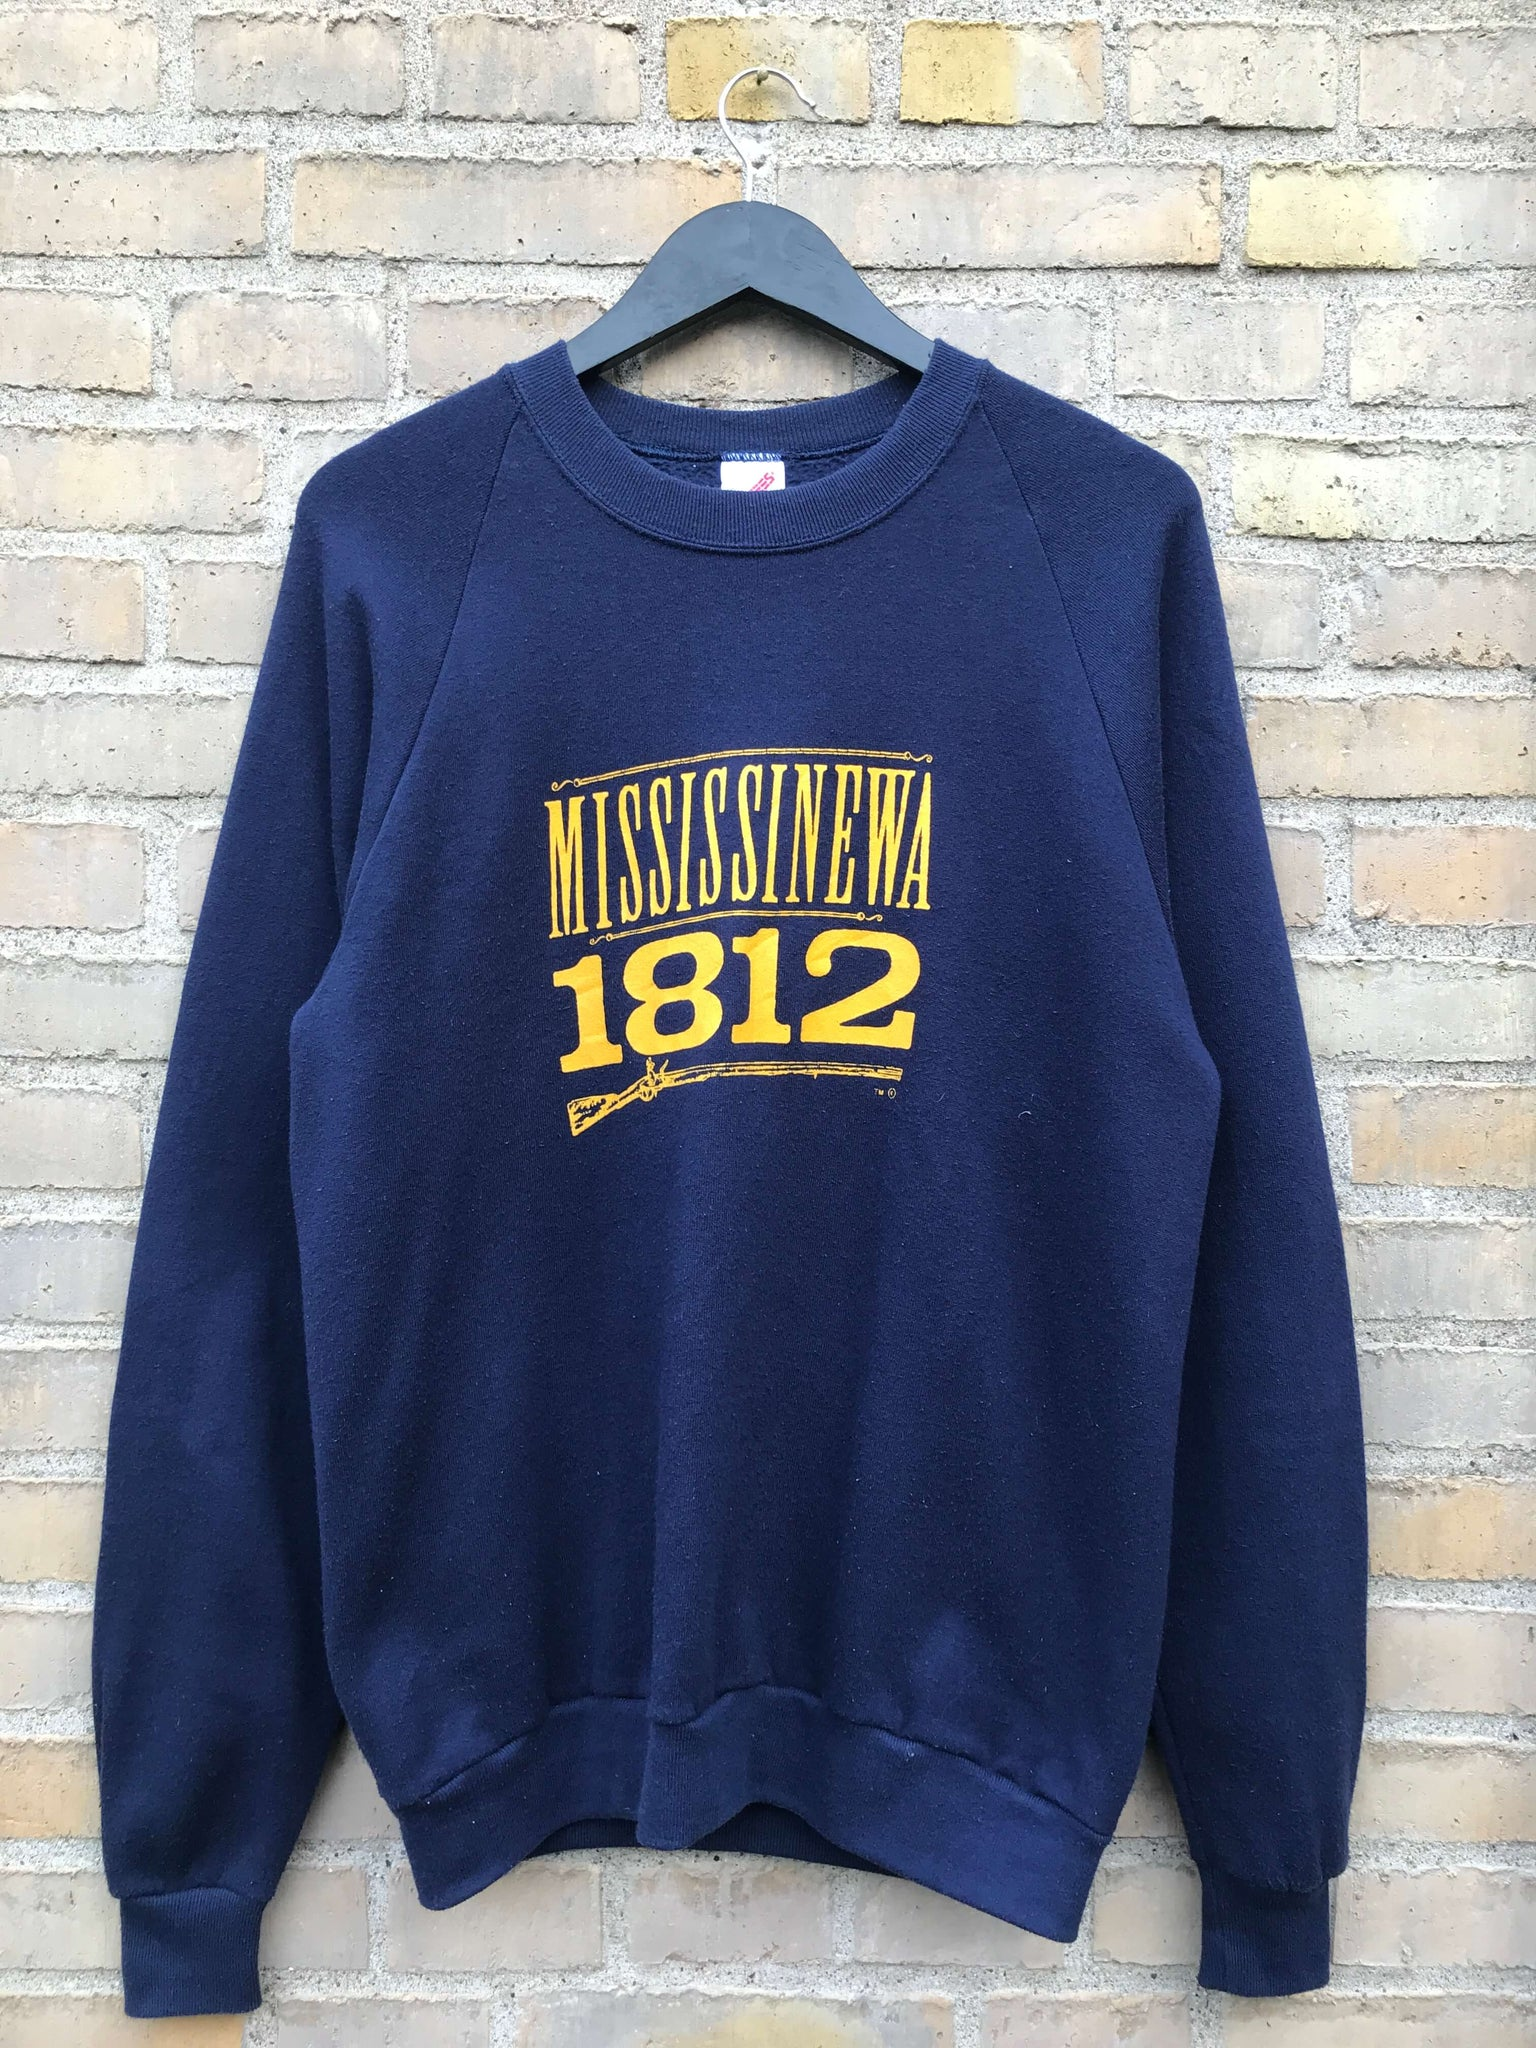 Vintage Mississinewa Sweatshirt - Large